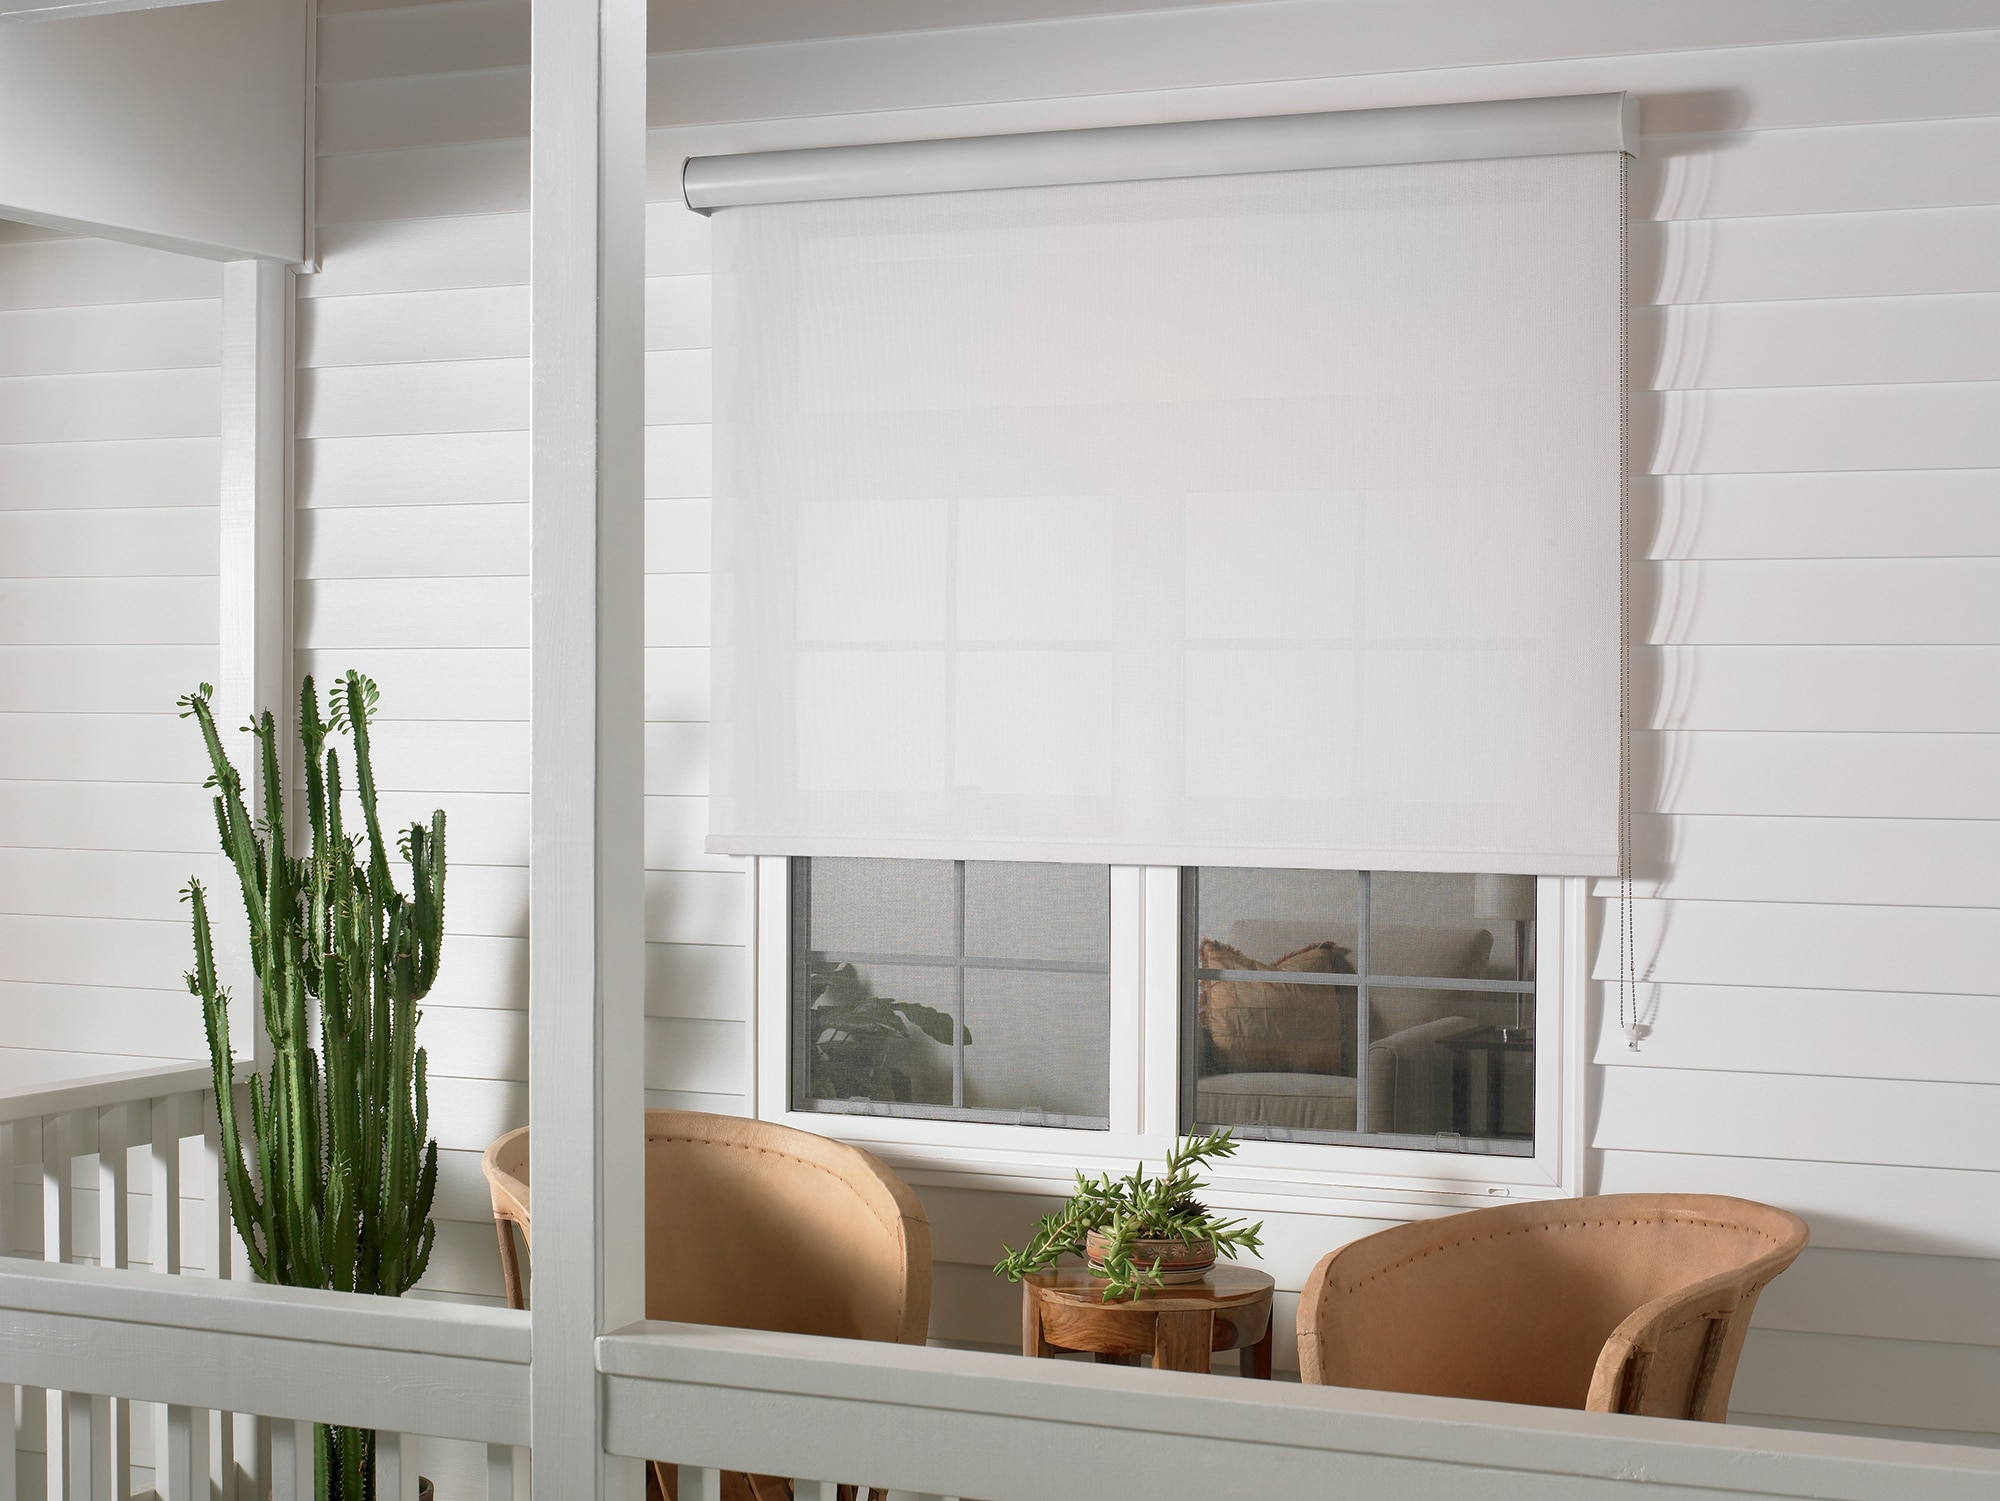 Best of home depot shades installation insured by ross - Exterior solar screens home depot ...